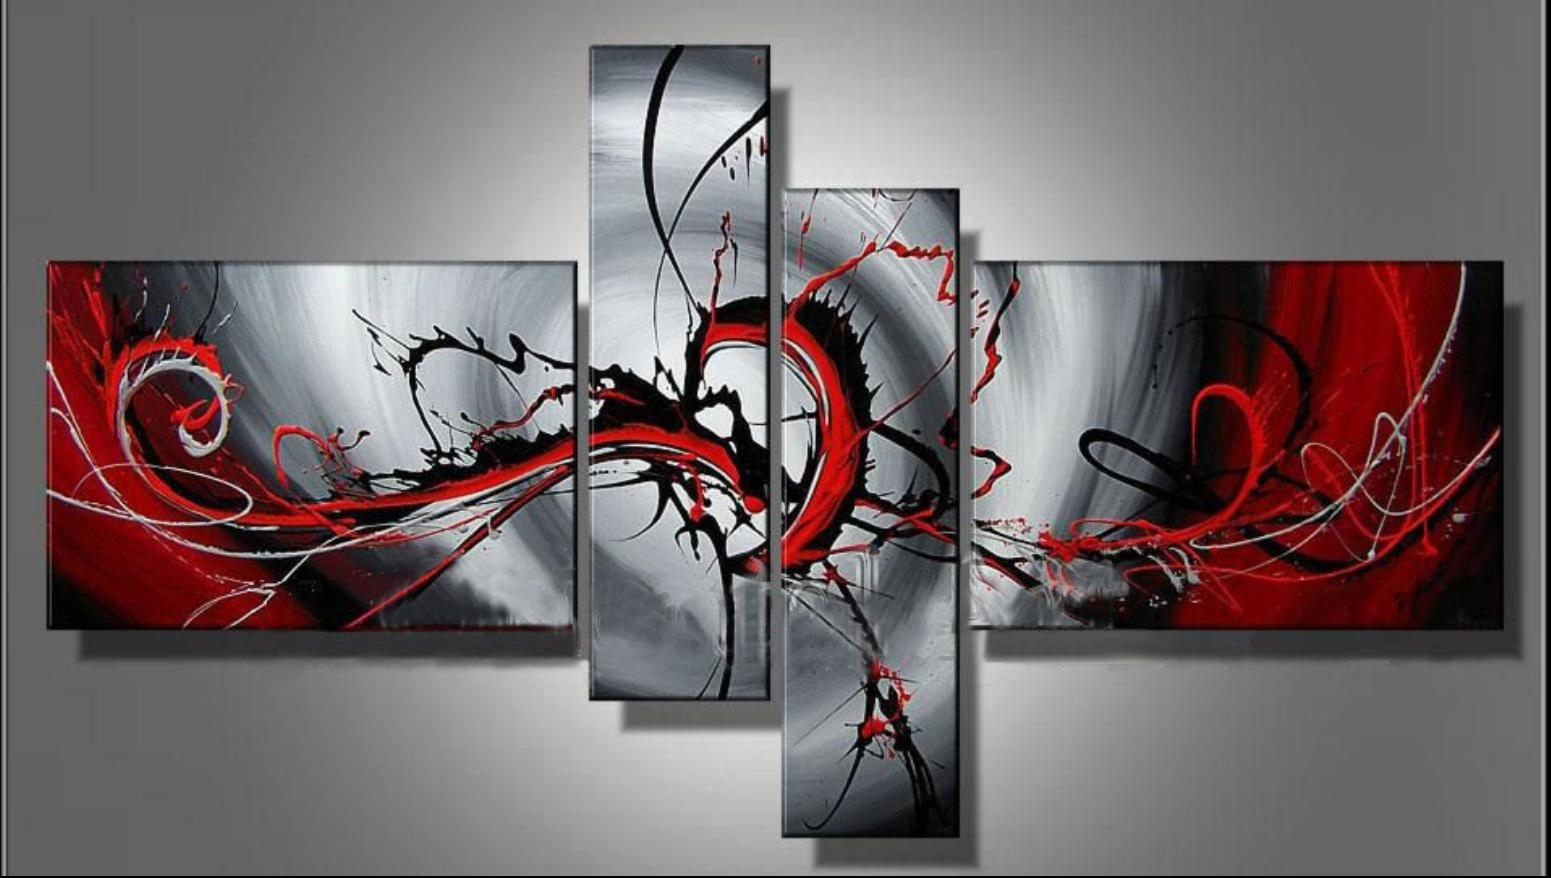 100% Hand Painted Classic Black & Red Modern Abstract Oil Painting Intended For Most Recently Released Abstract Oil Painting Wall Art (View 1 of 20)